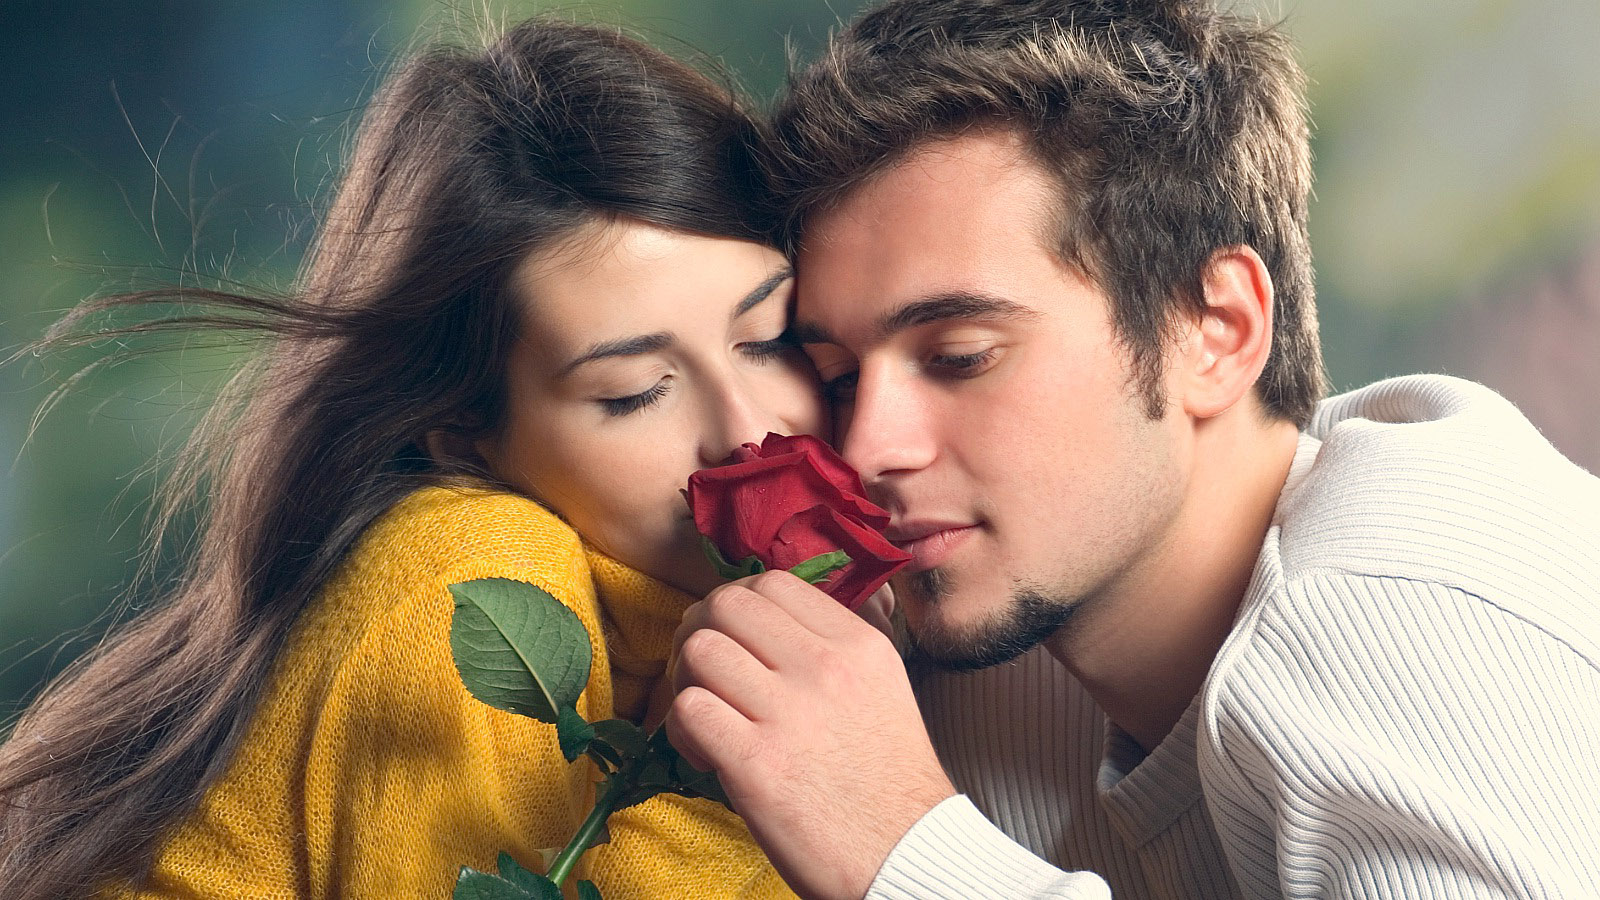 Incoming Searches: Romantic HD Wallpapers, Full HD Romantic Wallpapers, Romantic Love Wallpapers, Love HD Wallpapers, Romantic Couple HD Wallpapers.